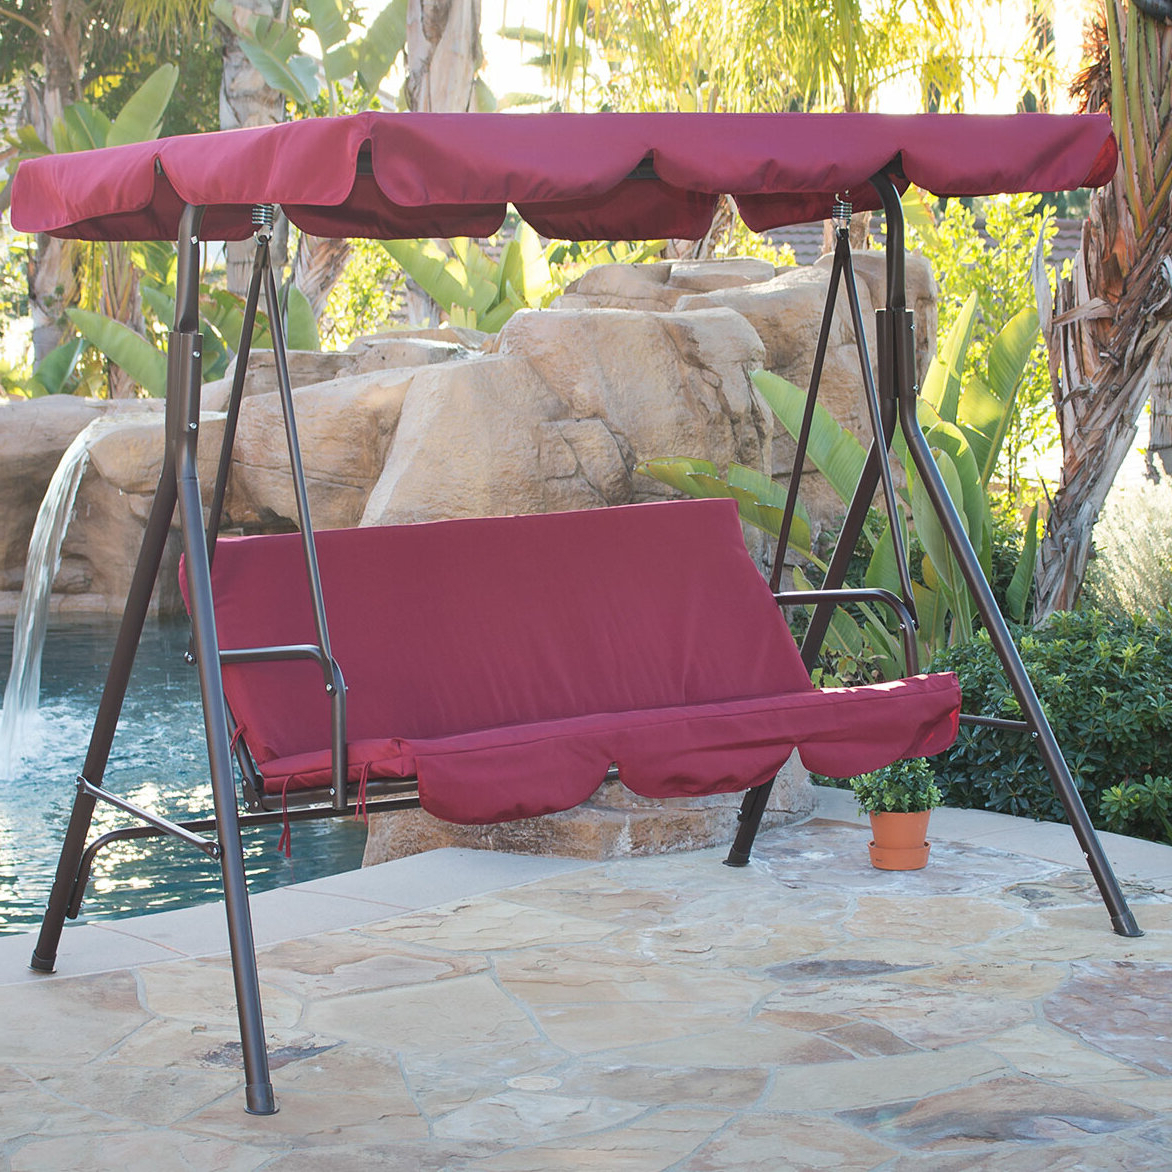 Wayfair Throughout Current Patio Porch Swings With Stand (View 17 of 30)